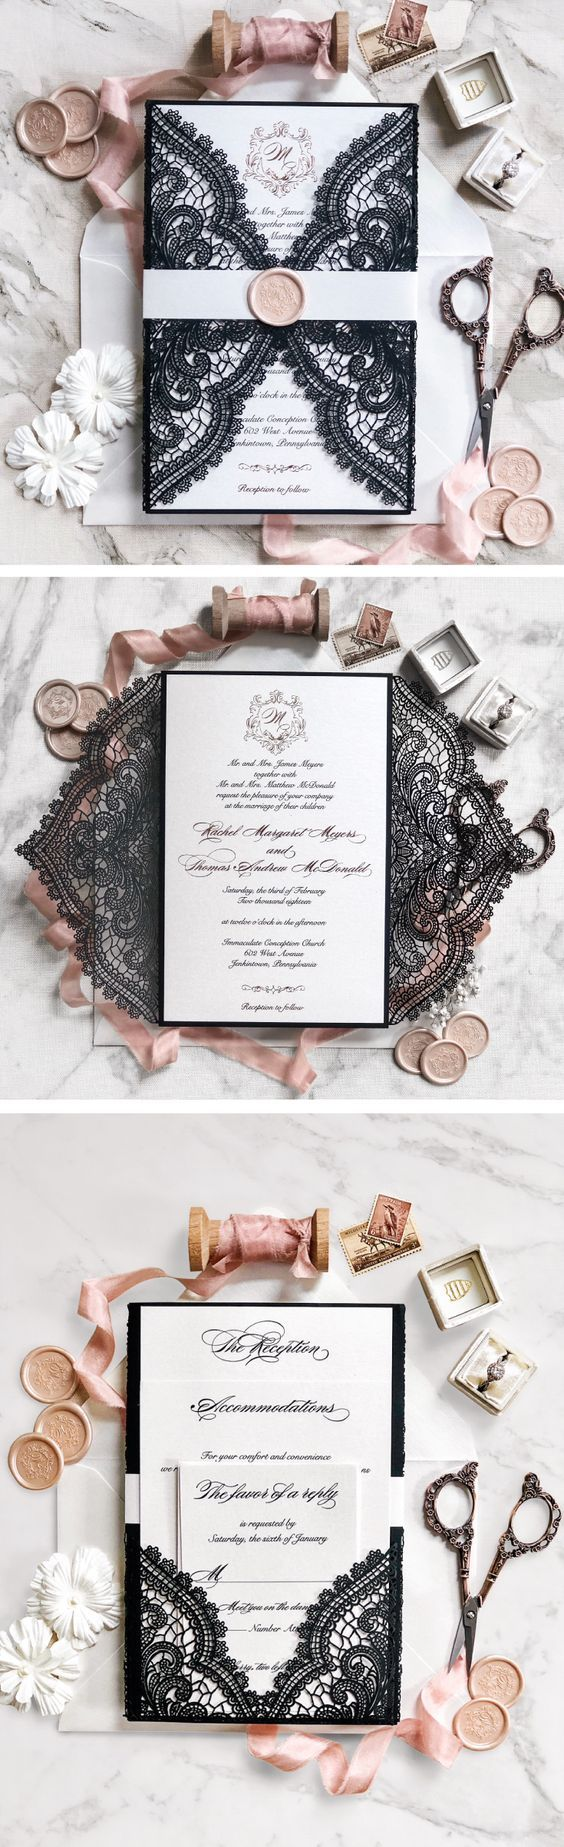 free wedding invitation templates country theme%0A black lace wedding invitation with stylish band  laser cut spring wedding  invitations  printable wedding